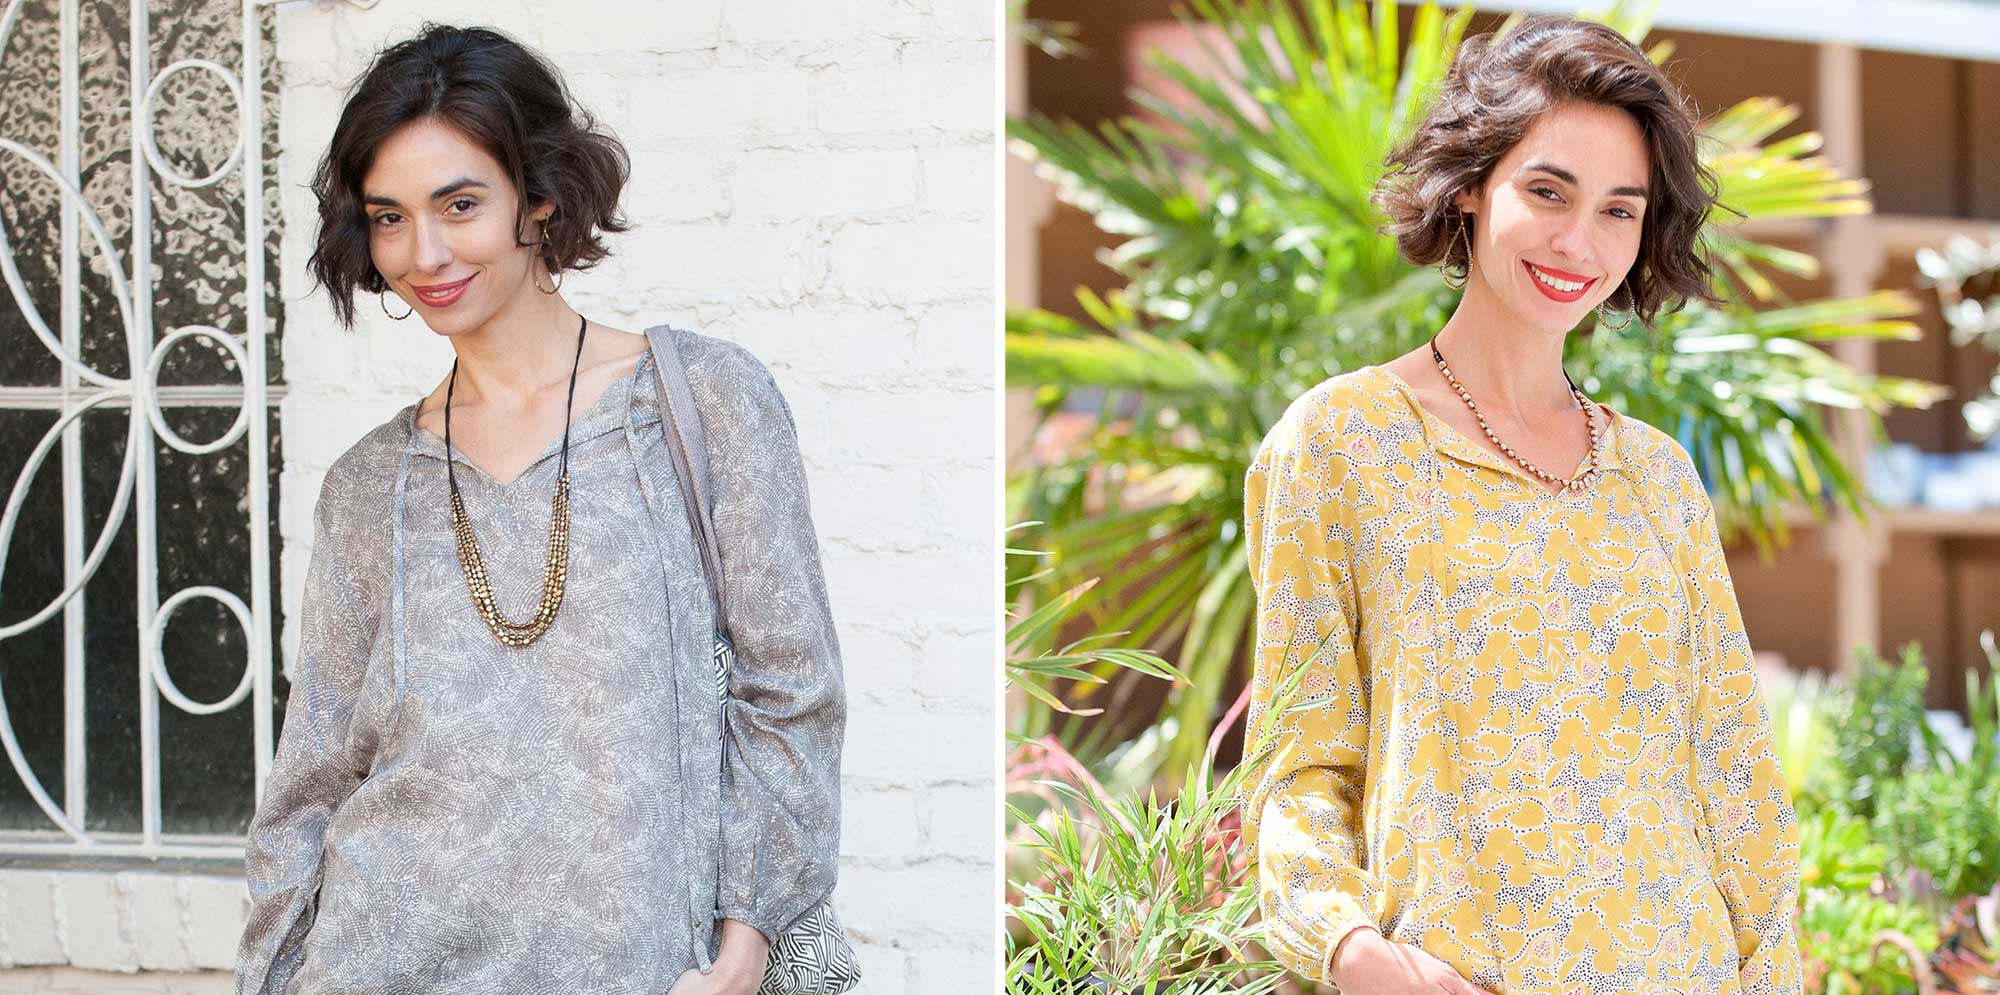 comparison image of woman wearing peasant blouse with long necklace and short necklace